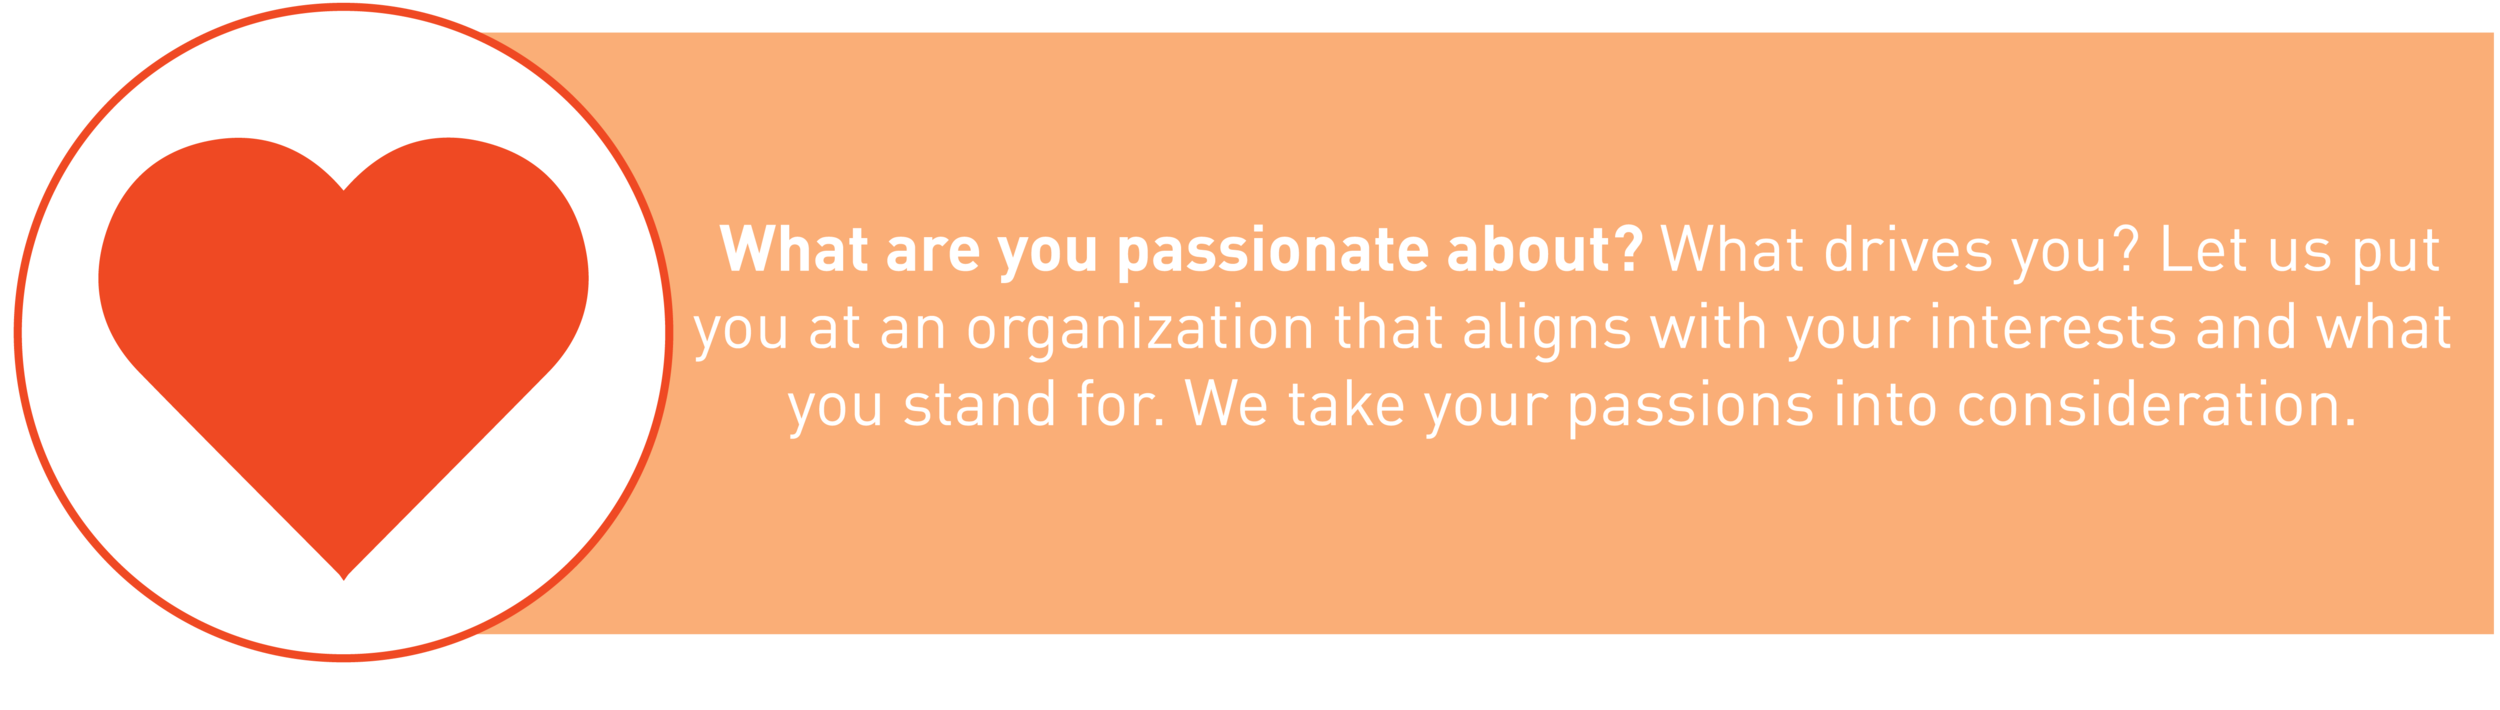 What are you passionate about? Matching graphic about your passions